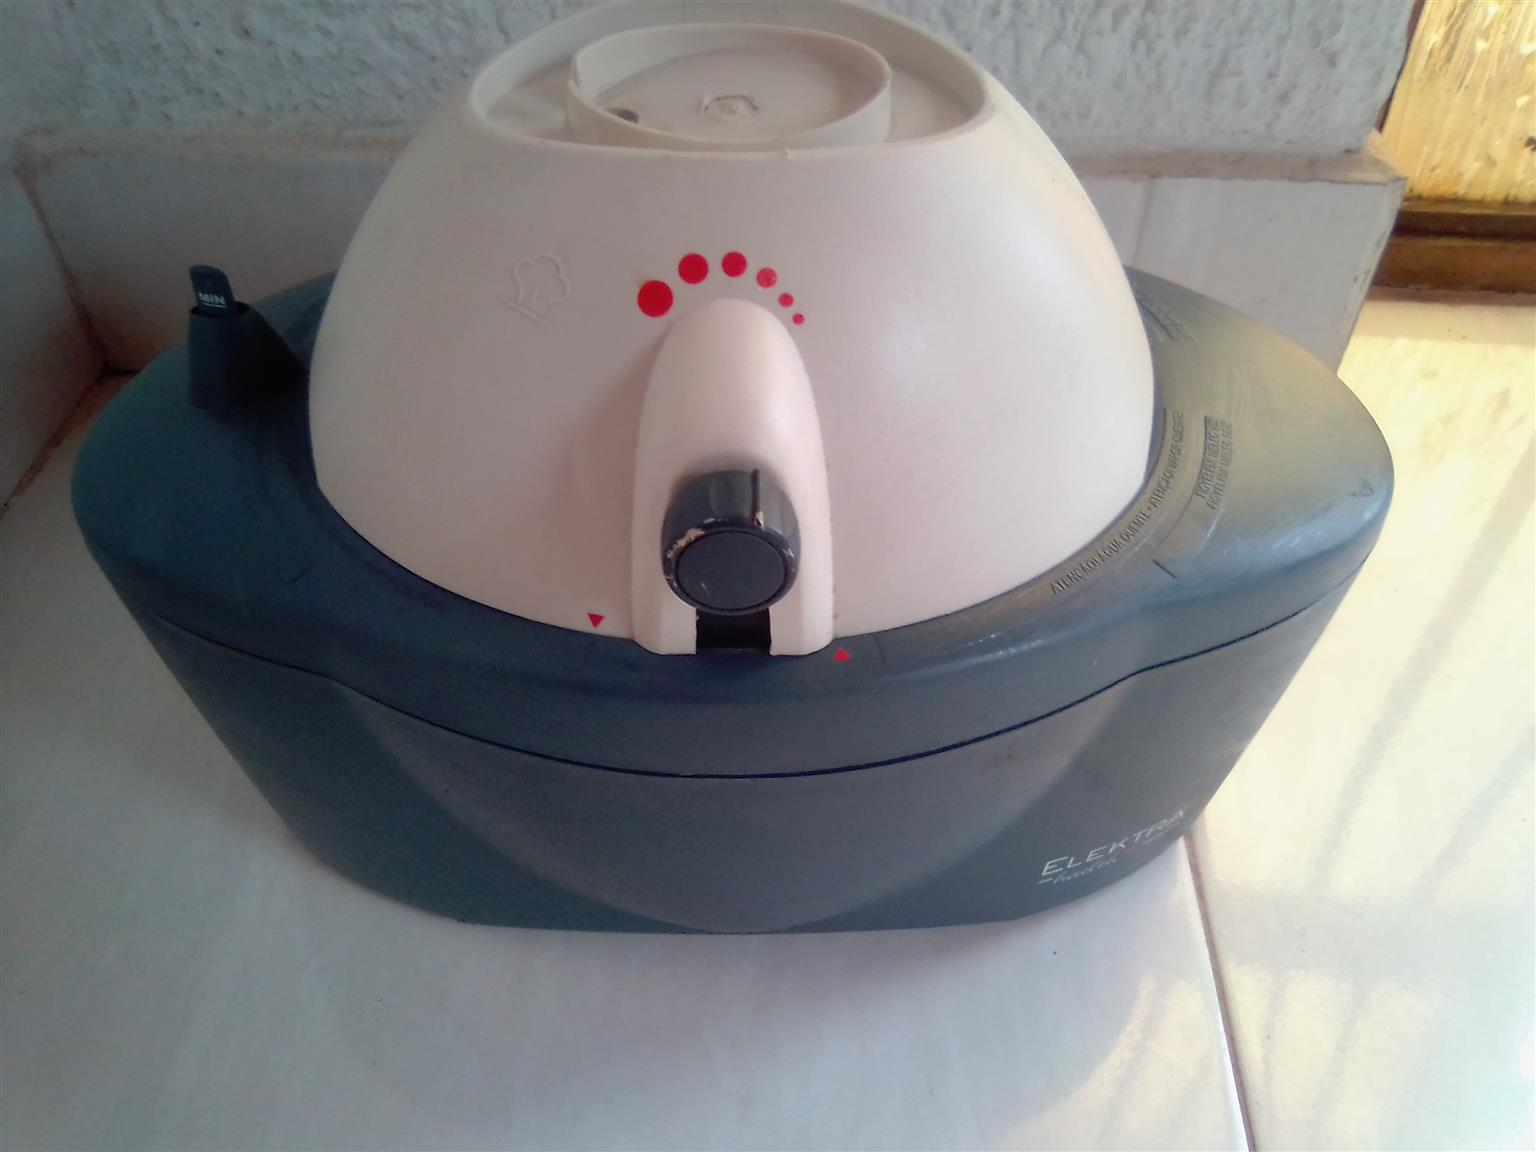 Humidifier Electra Health Cold and Warm Steam. As good as new.